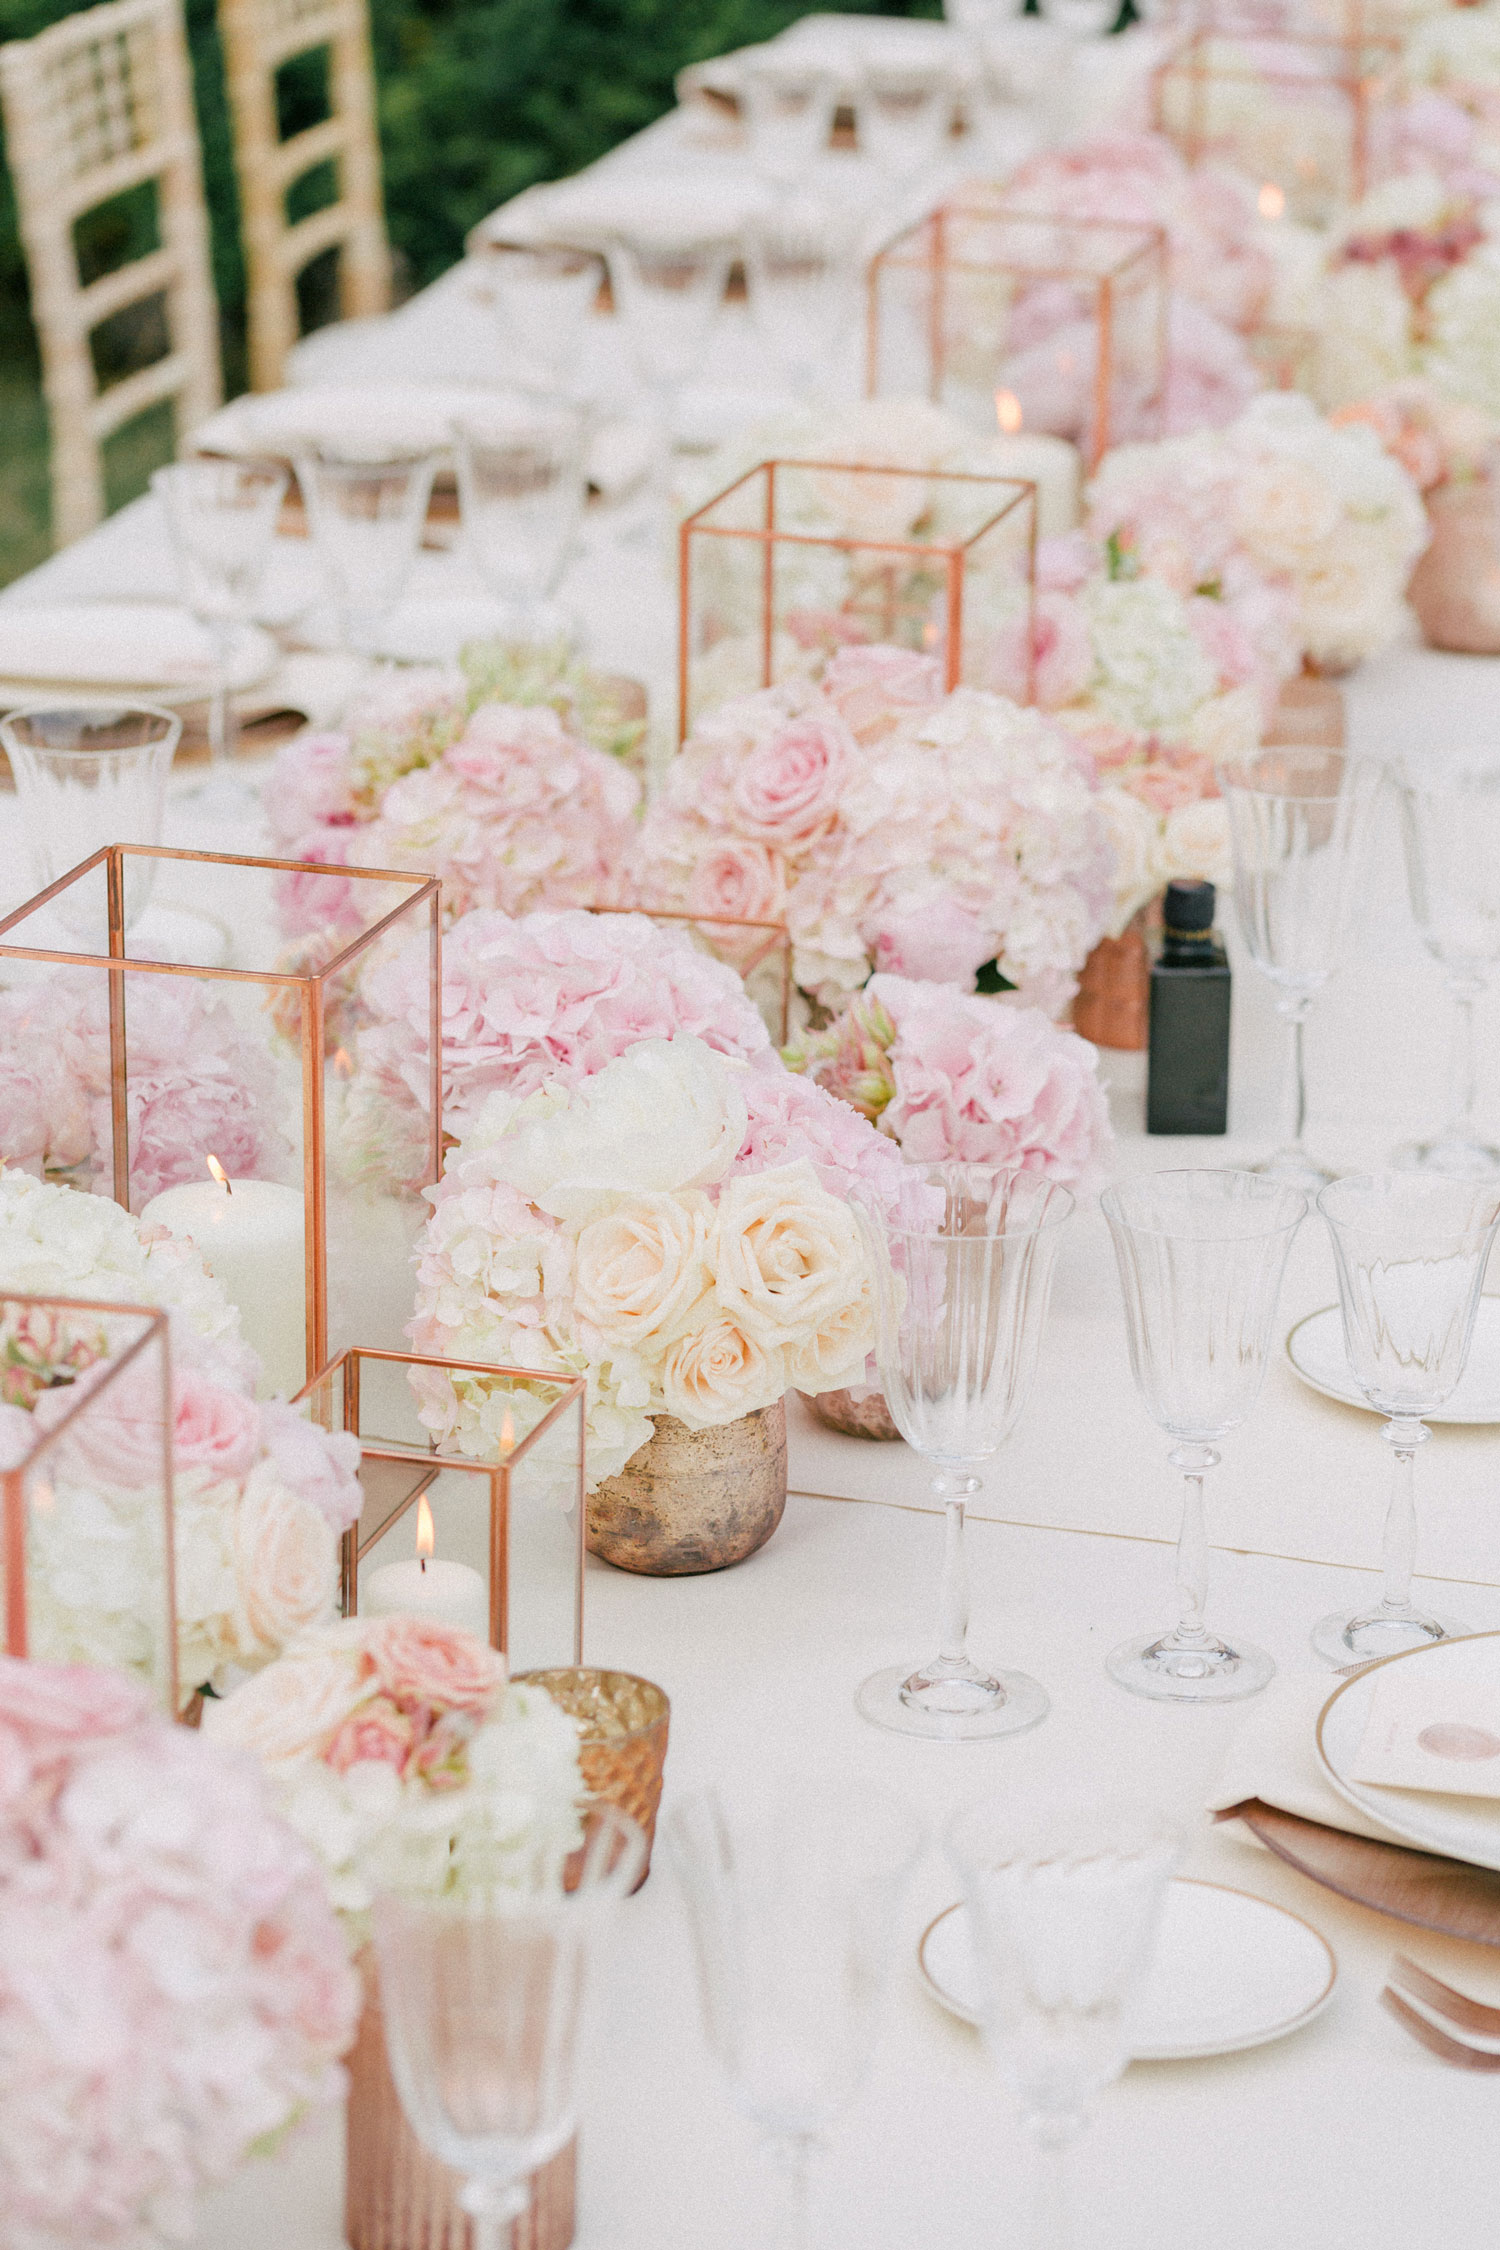 Wedding Ideas: Reasons to Have Low Centerpieces at Your Reception ...